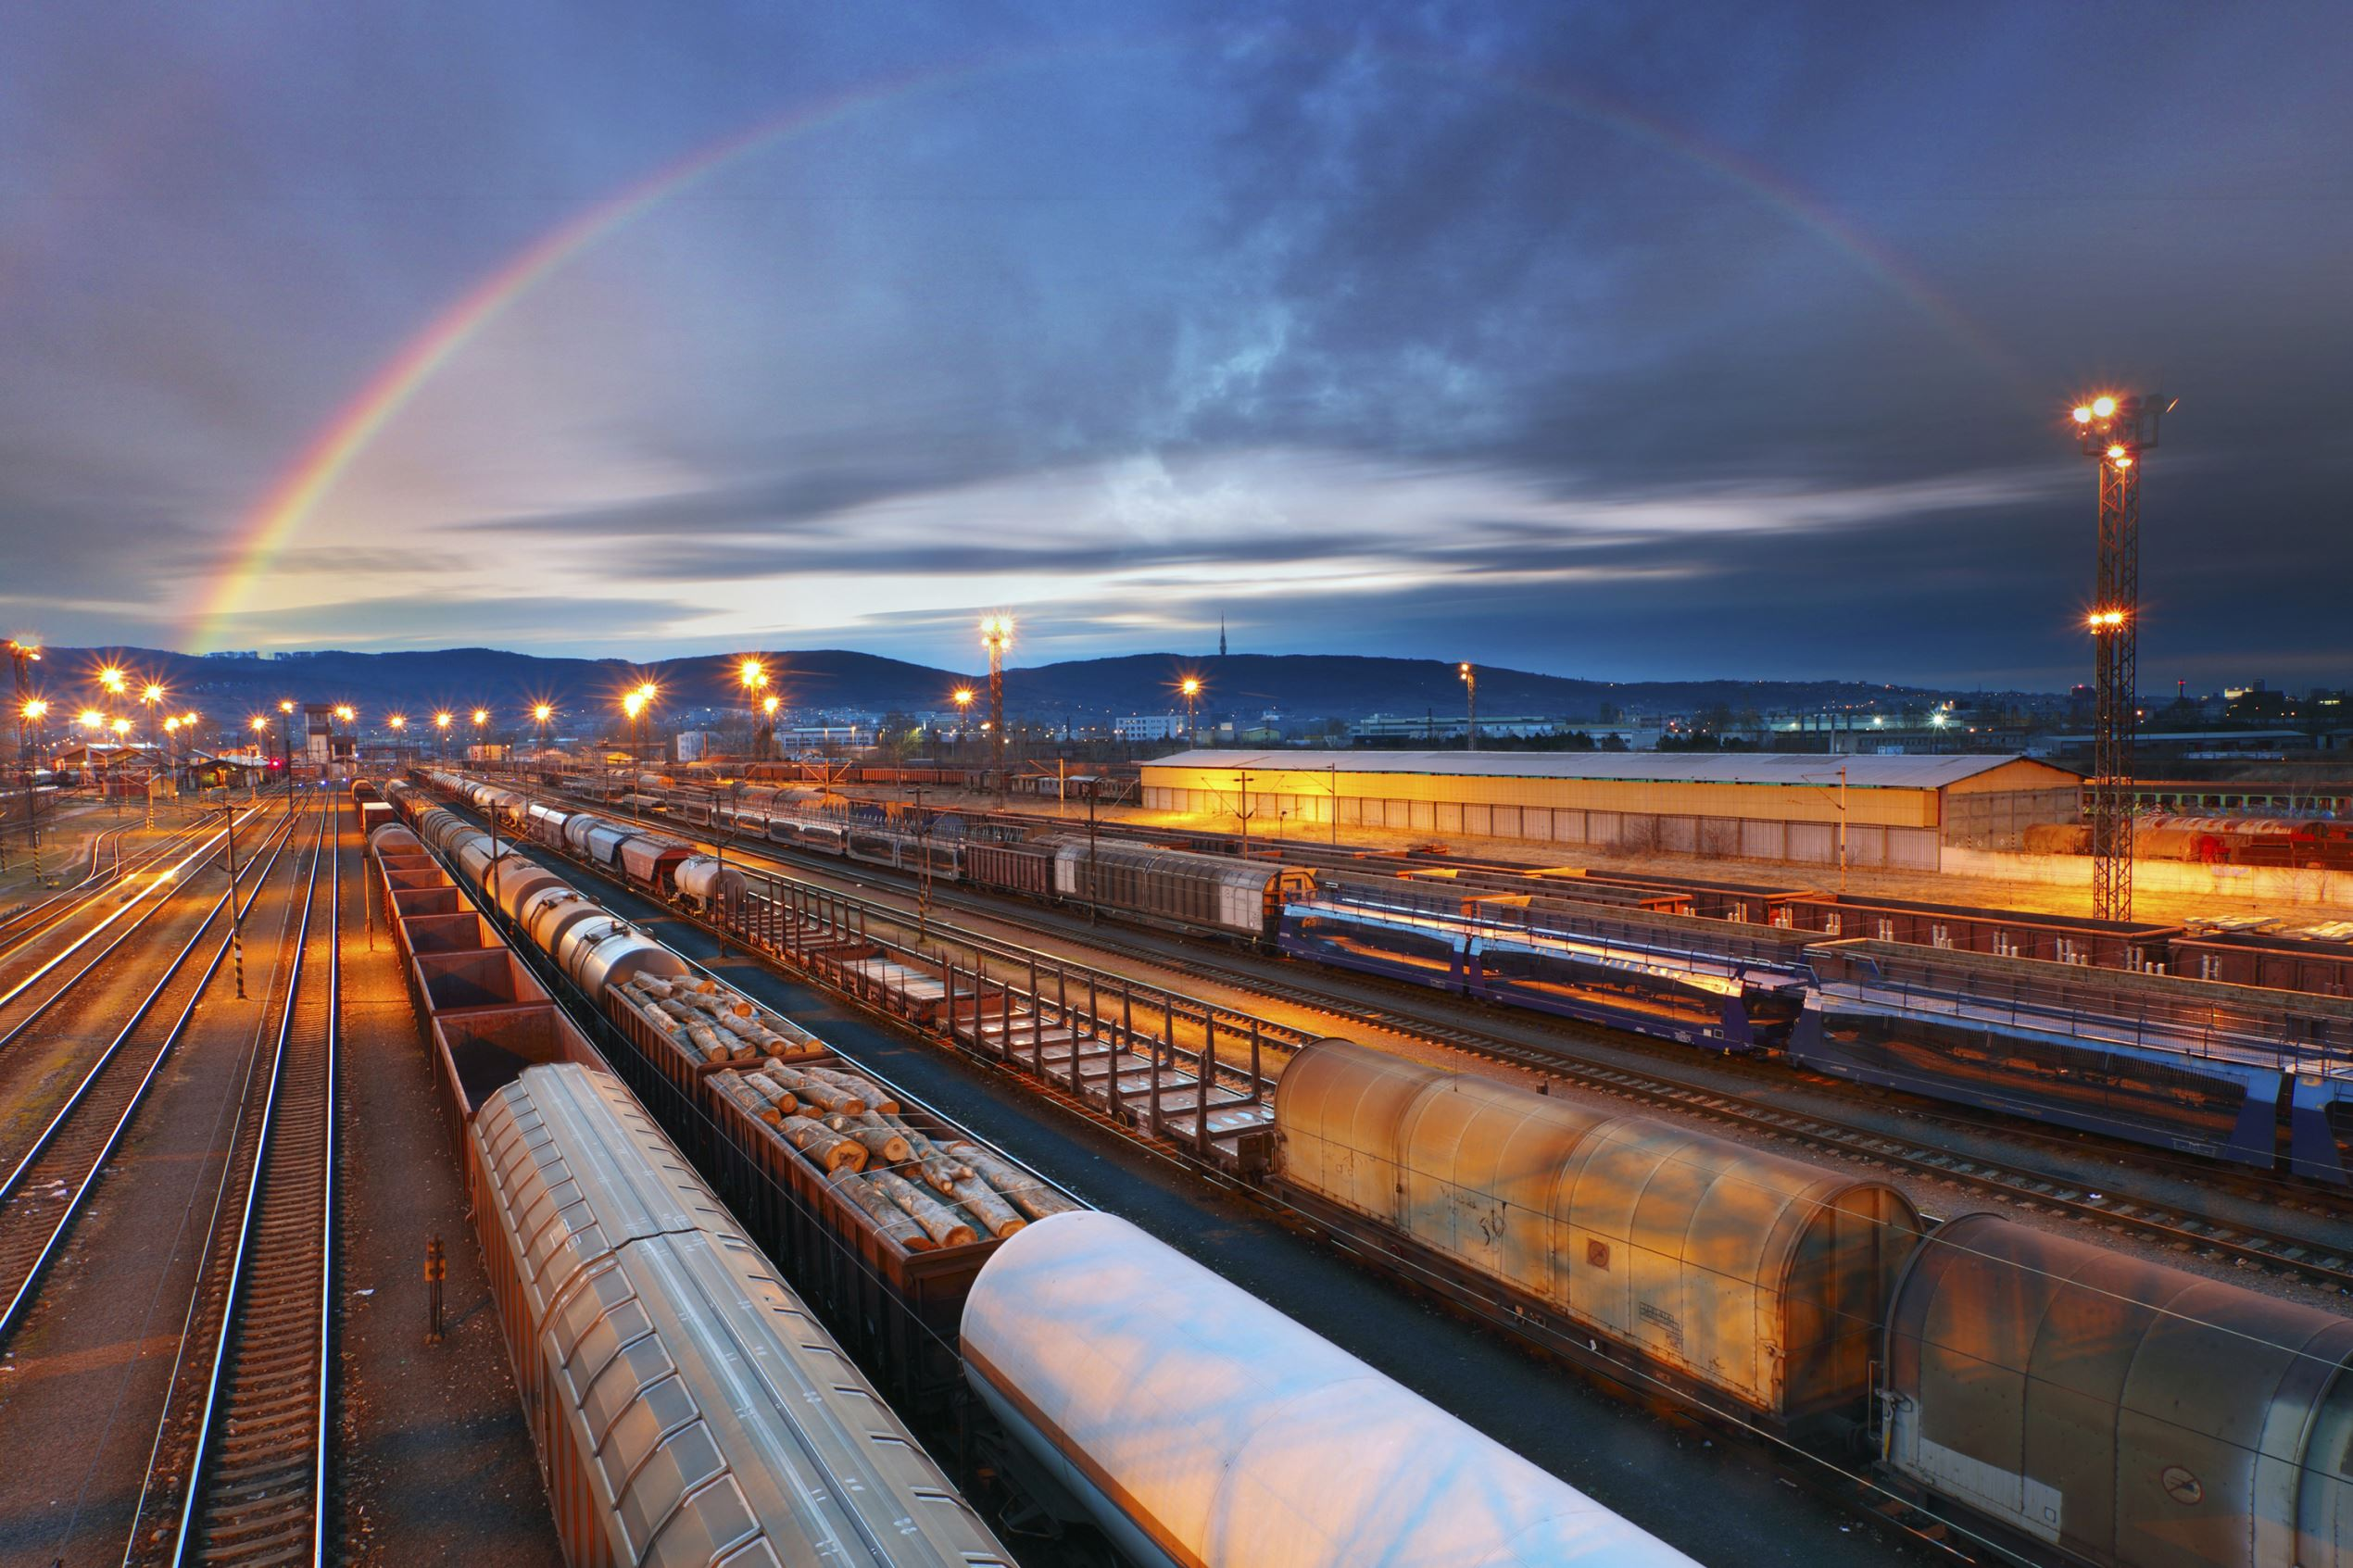 Rainbow over freight train depot.